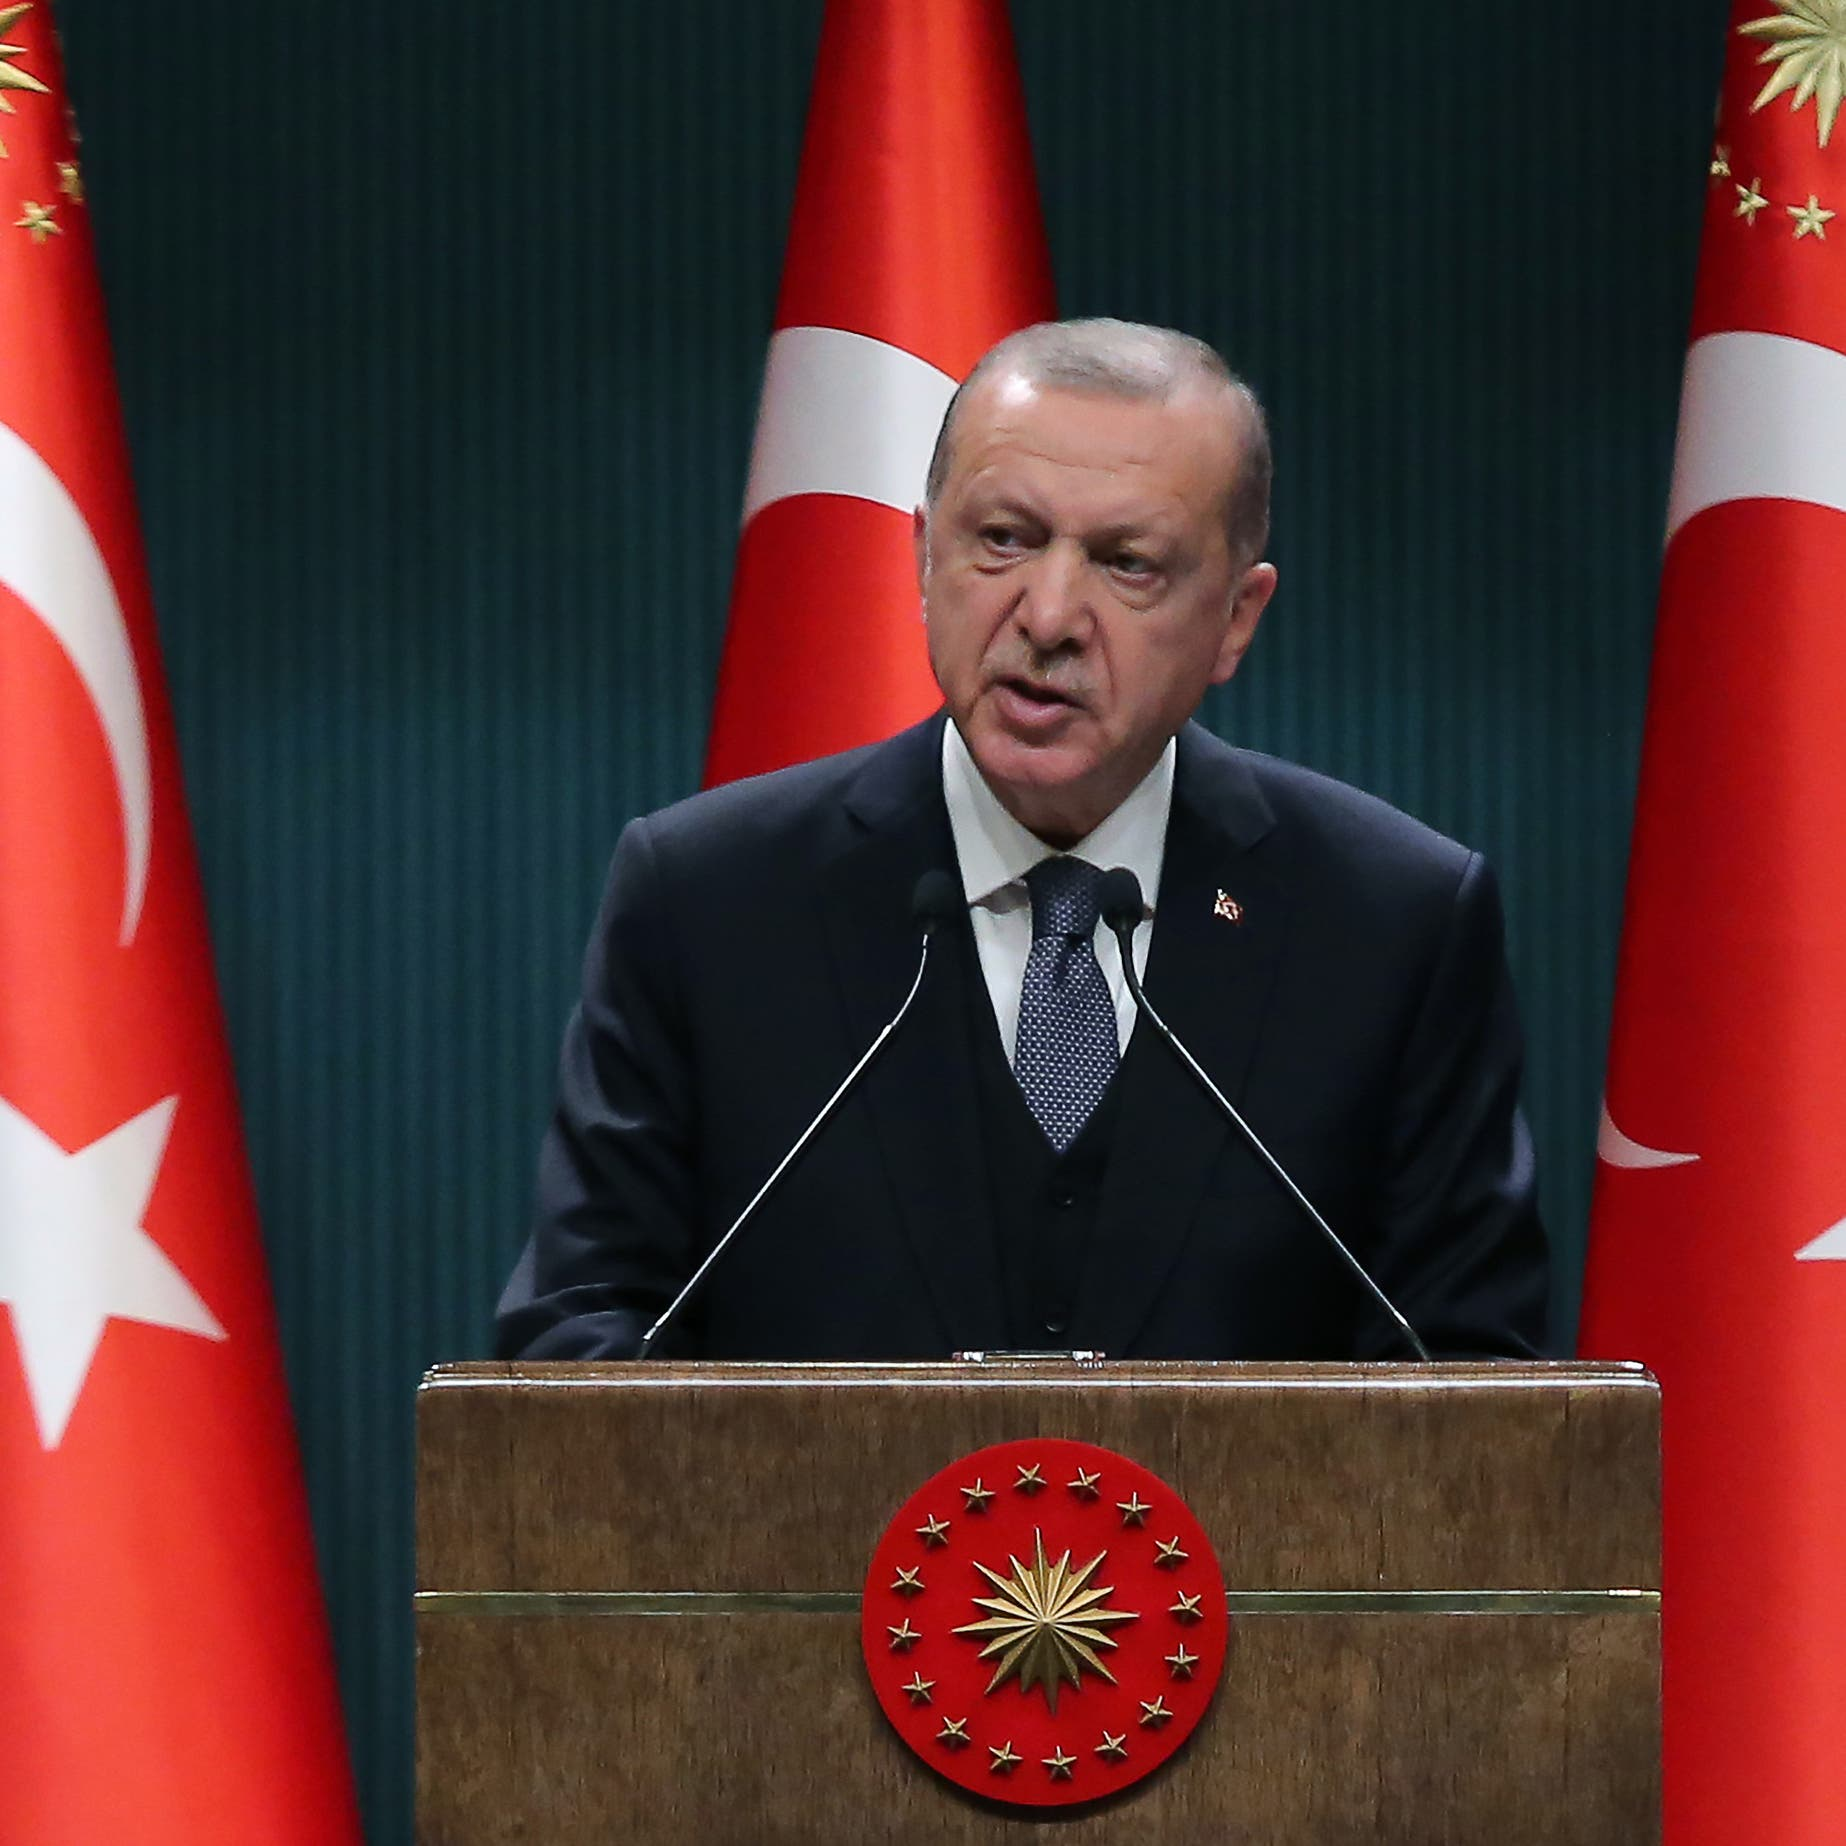 Turkey pushing ahead with its agenda, risking the wrath of US, EU sanctions